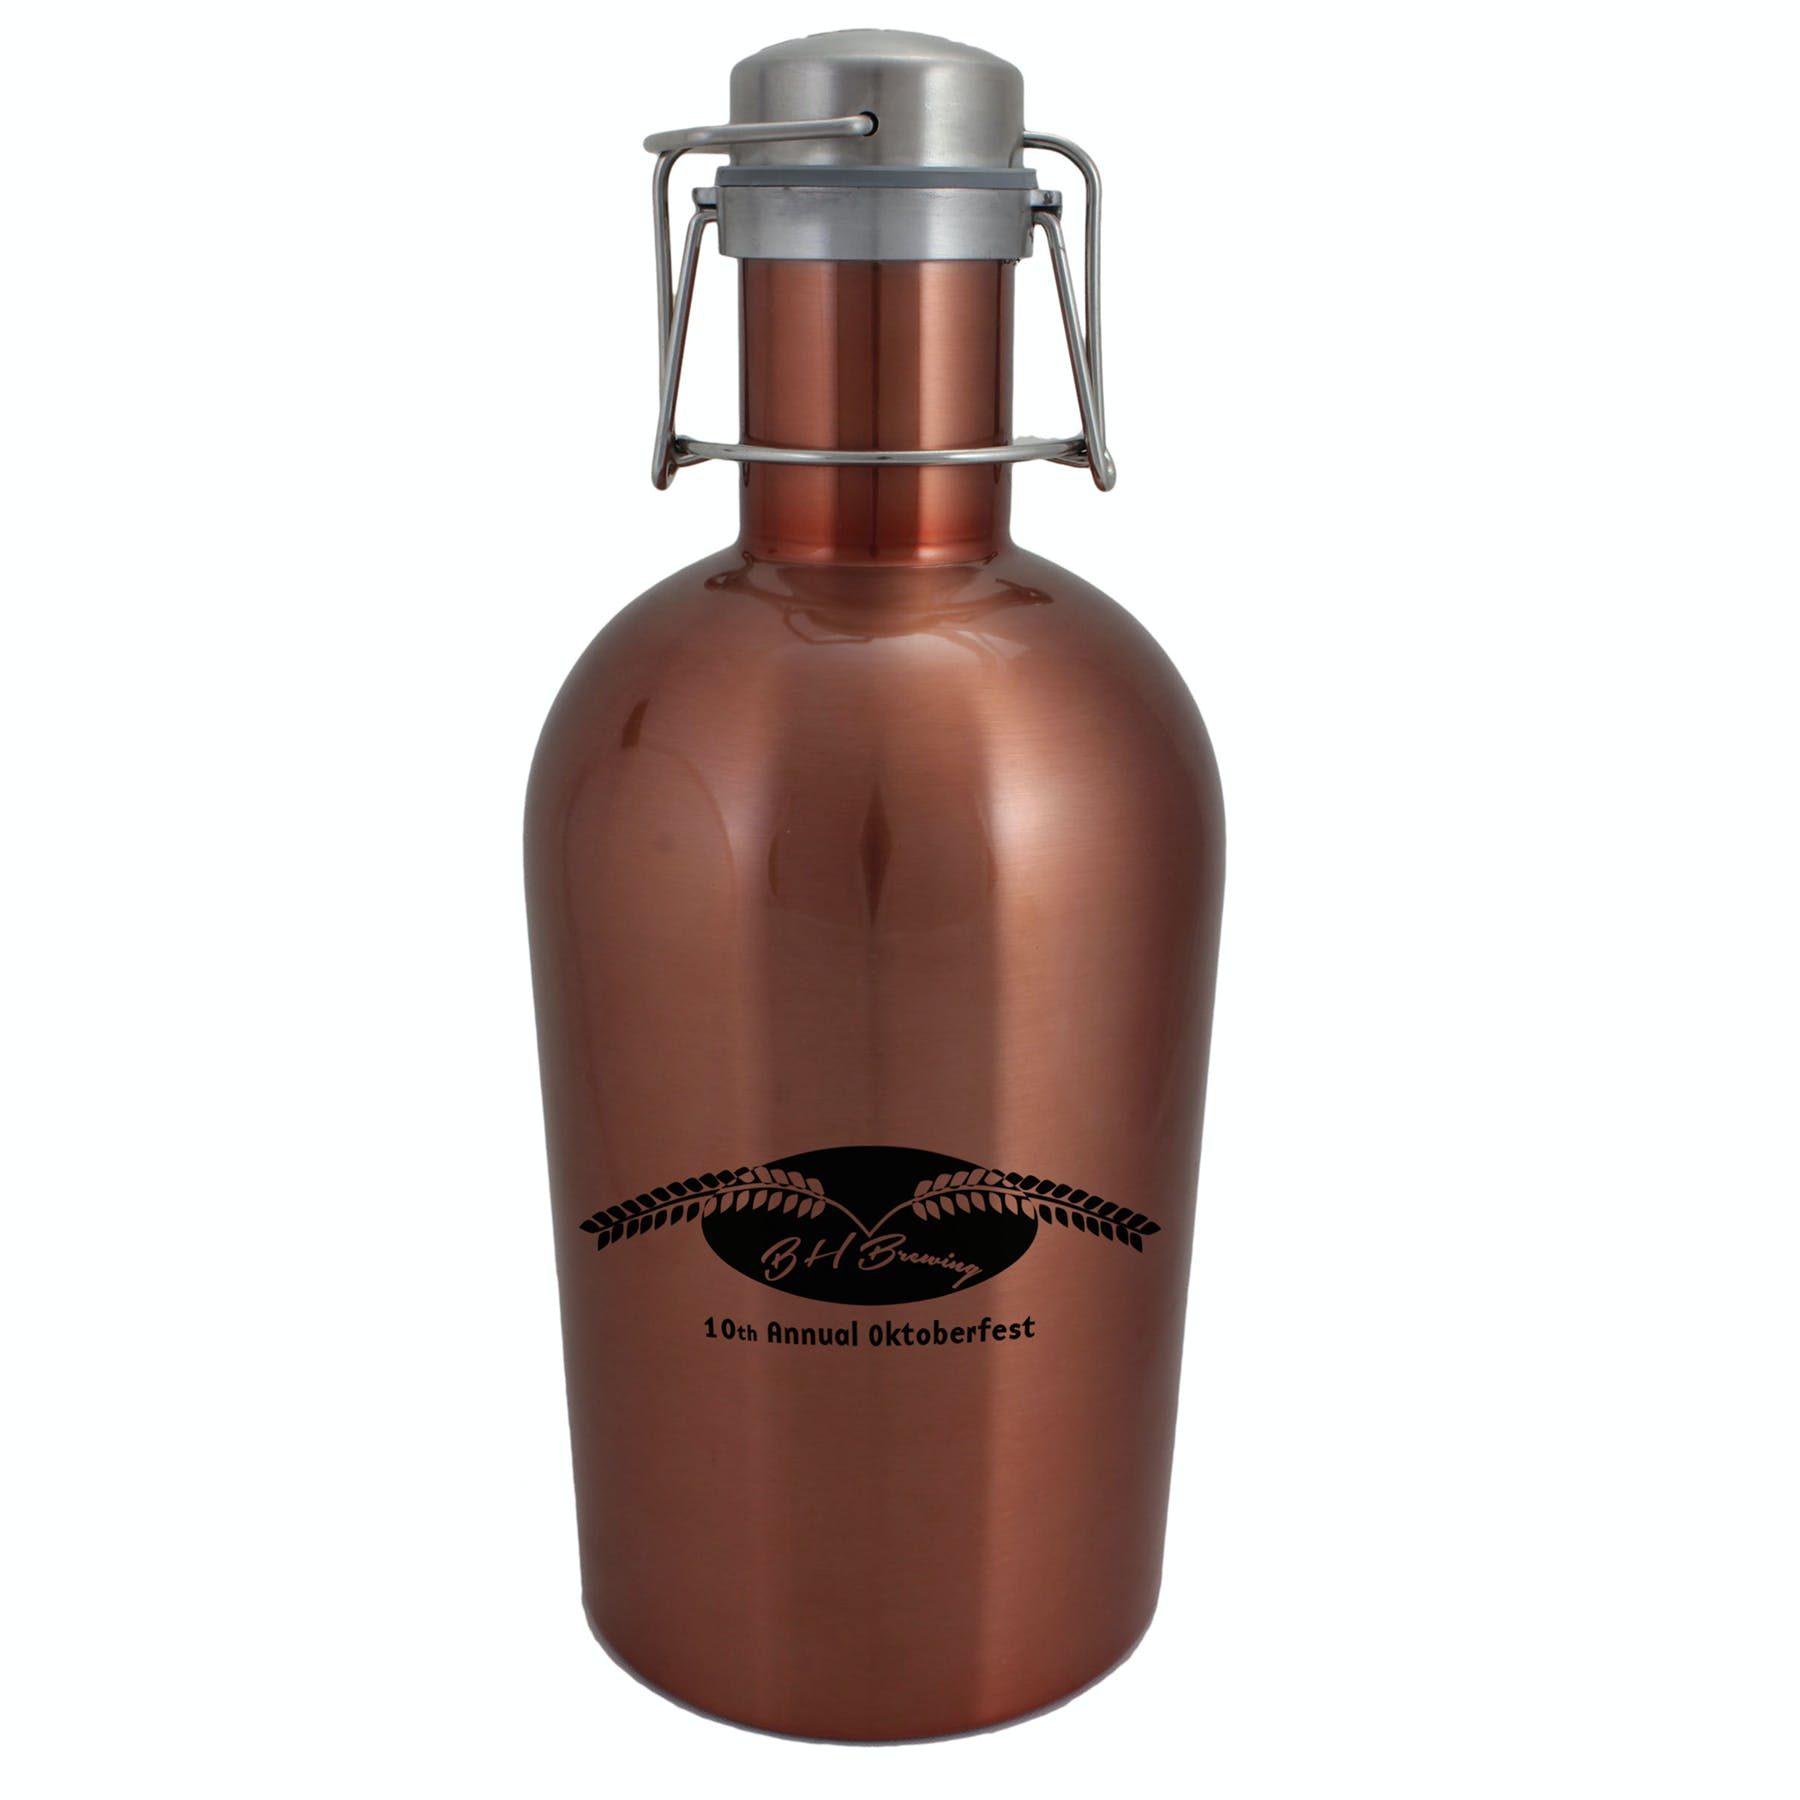 64 Oz. Copper Stainless Steel Growler (Item # RGIOP-JYNBC) Growler sold by InkEasy